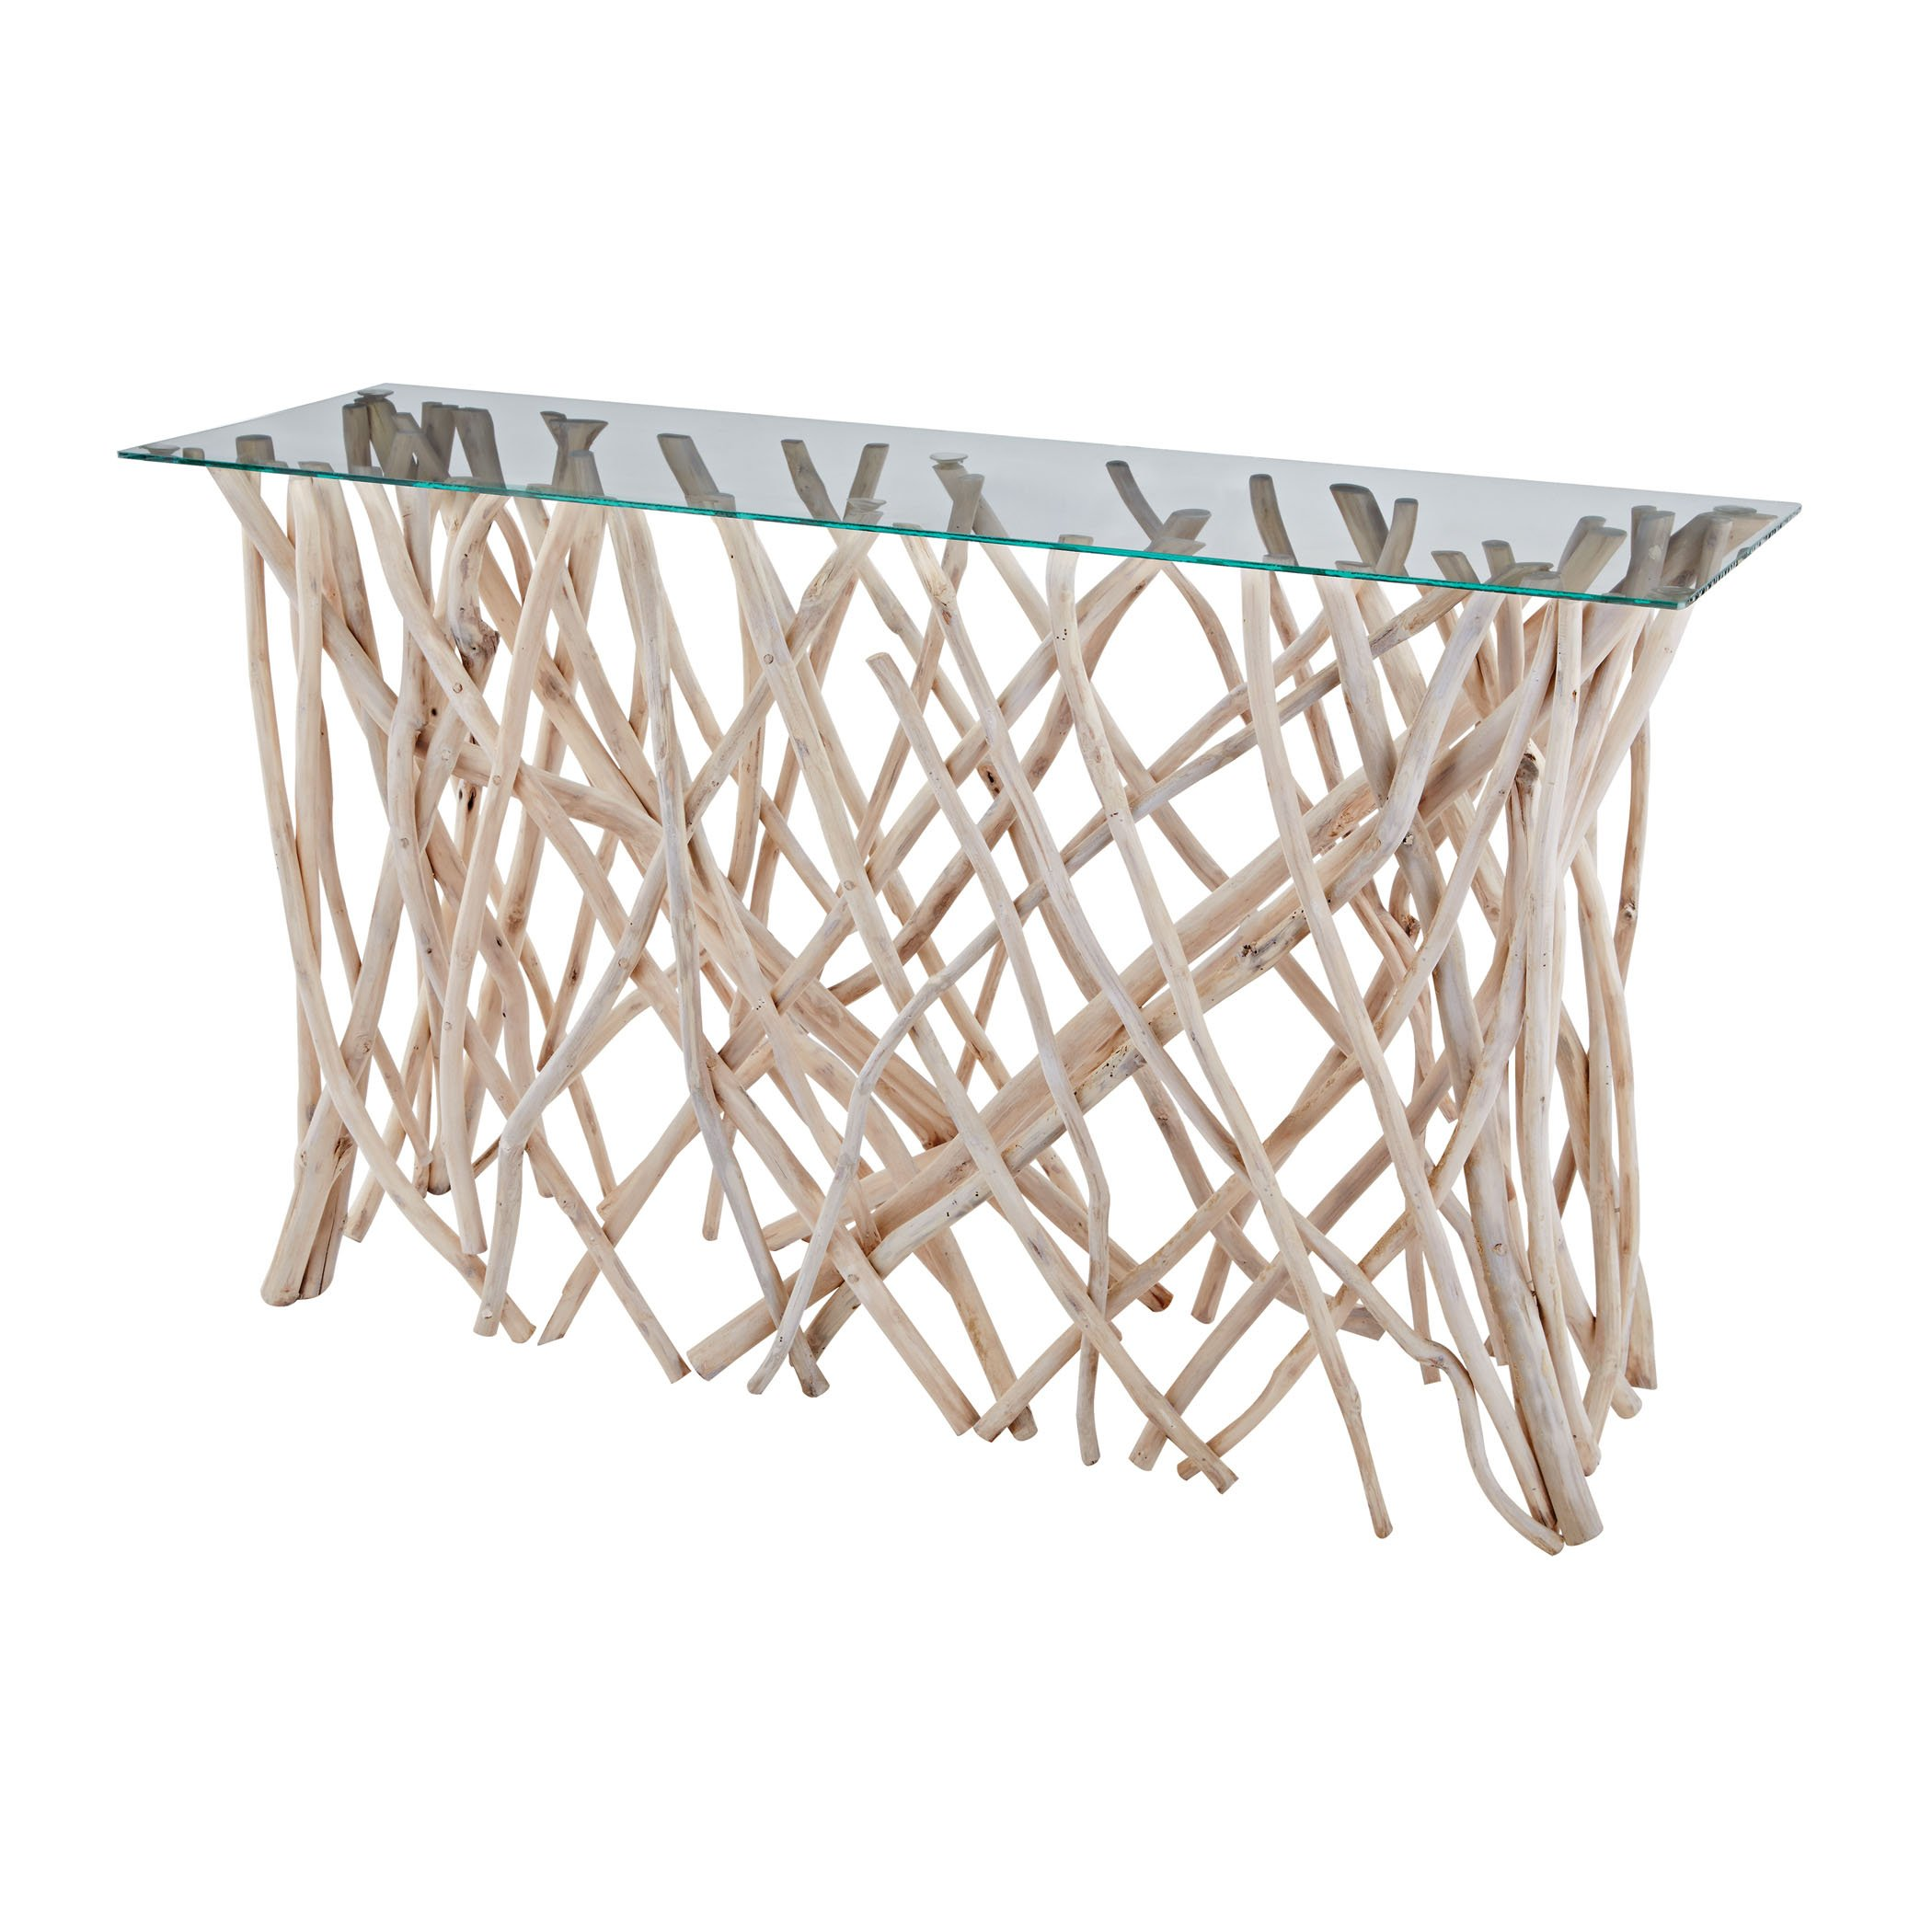 Dimond Home 162-027 Teak Root Console Table, 47'' x 14'' x 30''